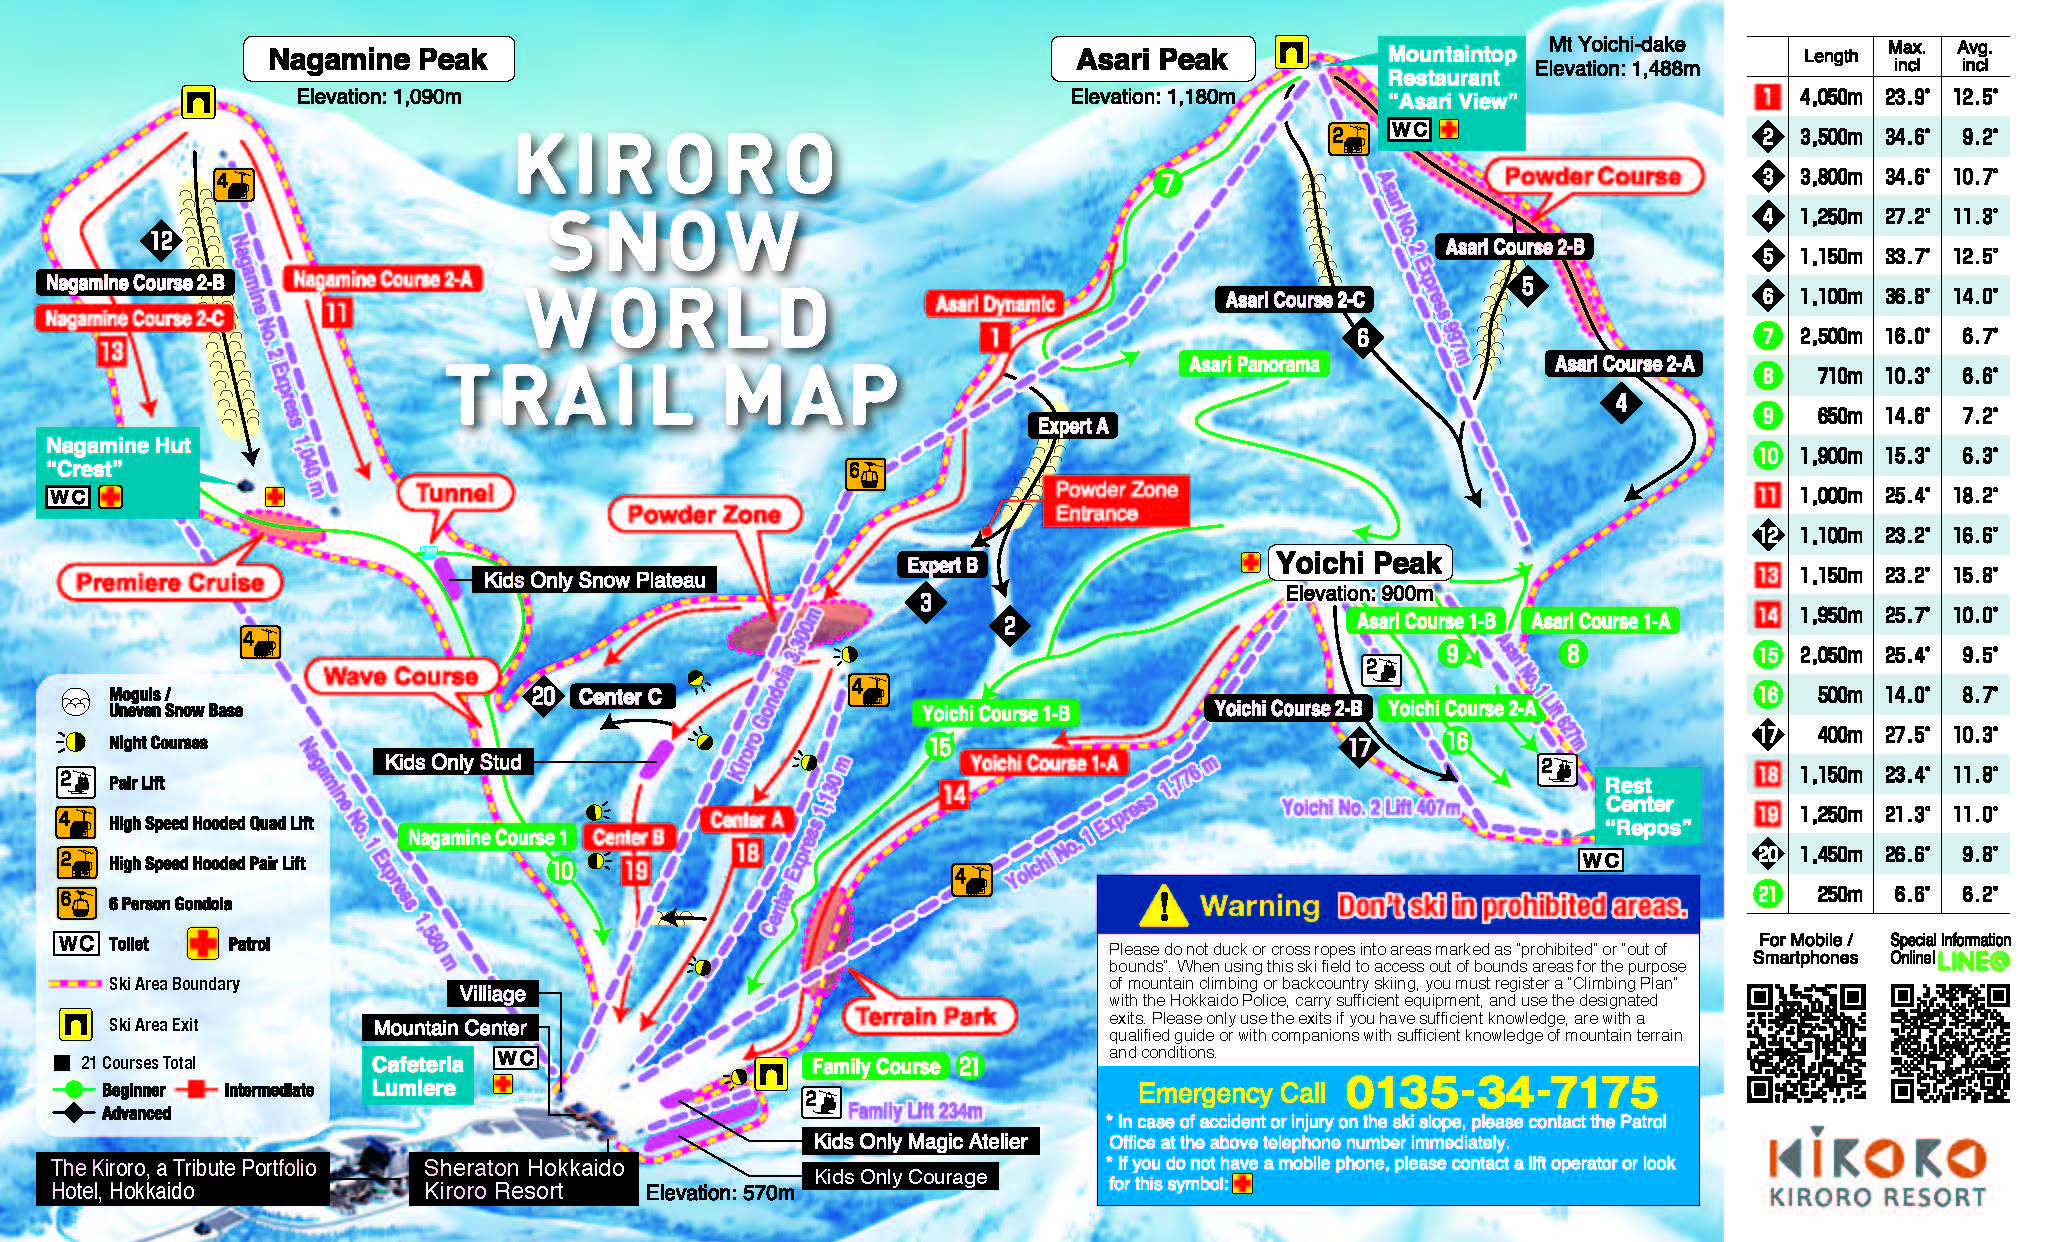 Singaporean's Guide to Snowboarding in Asia